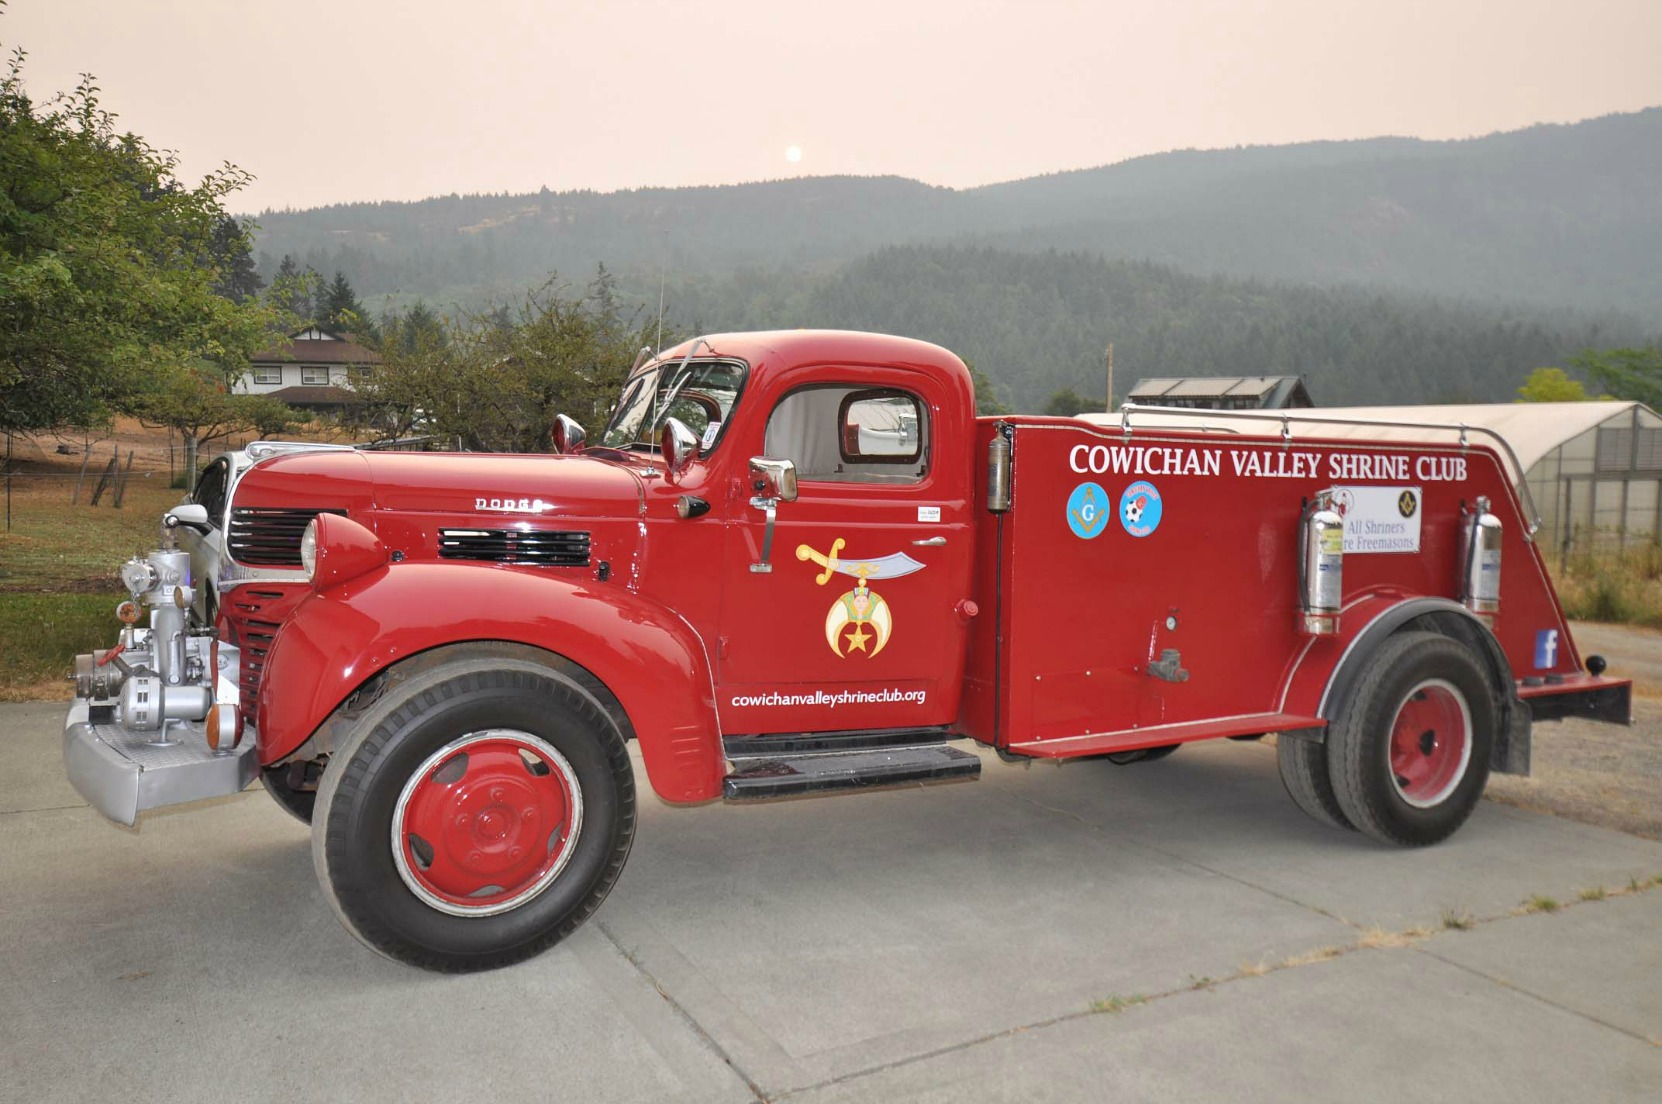 The Cowichan Valley Shrine Club fire truck, a 1946 Dodge. (photo courtesy of Cowichan Valley Shrine Club)